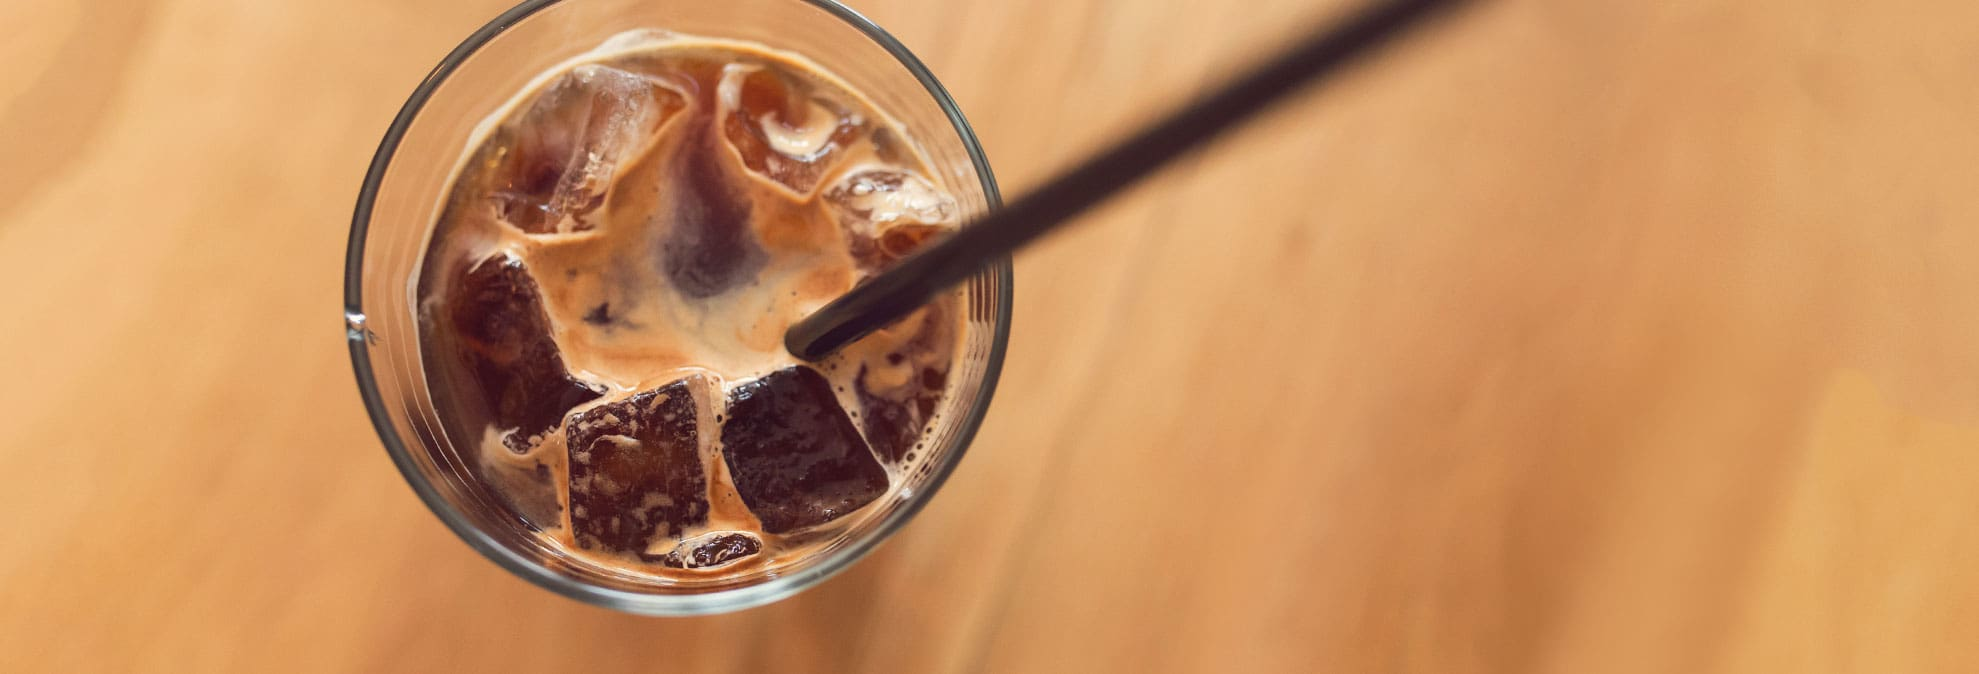 Make the Best Iced Coffee at Home